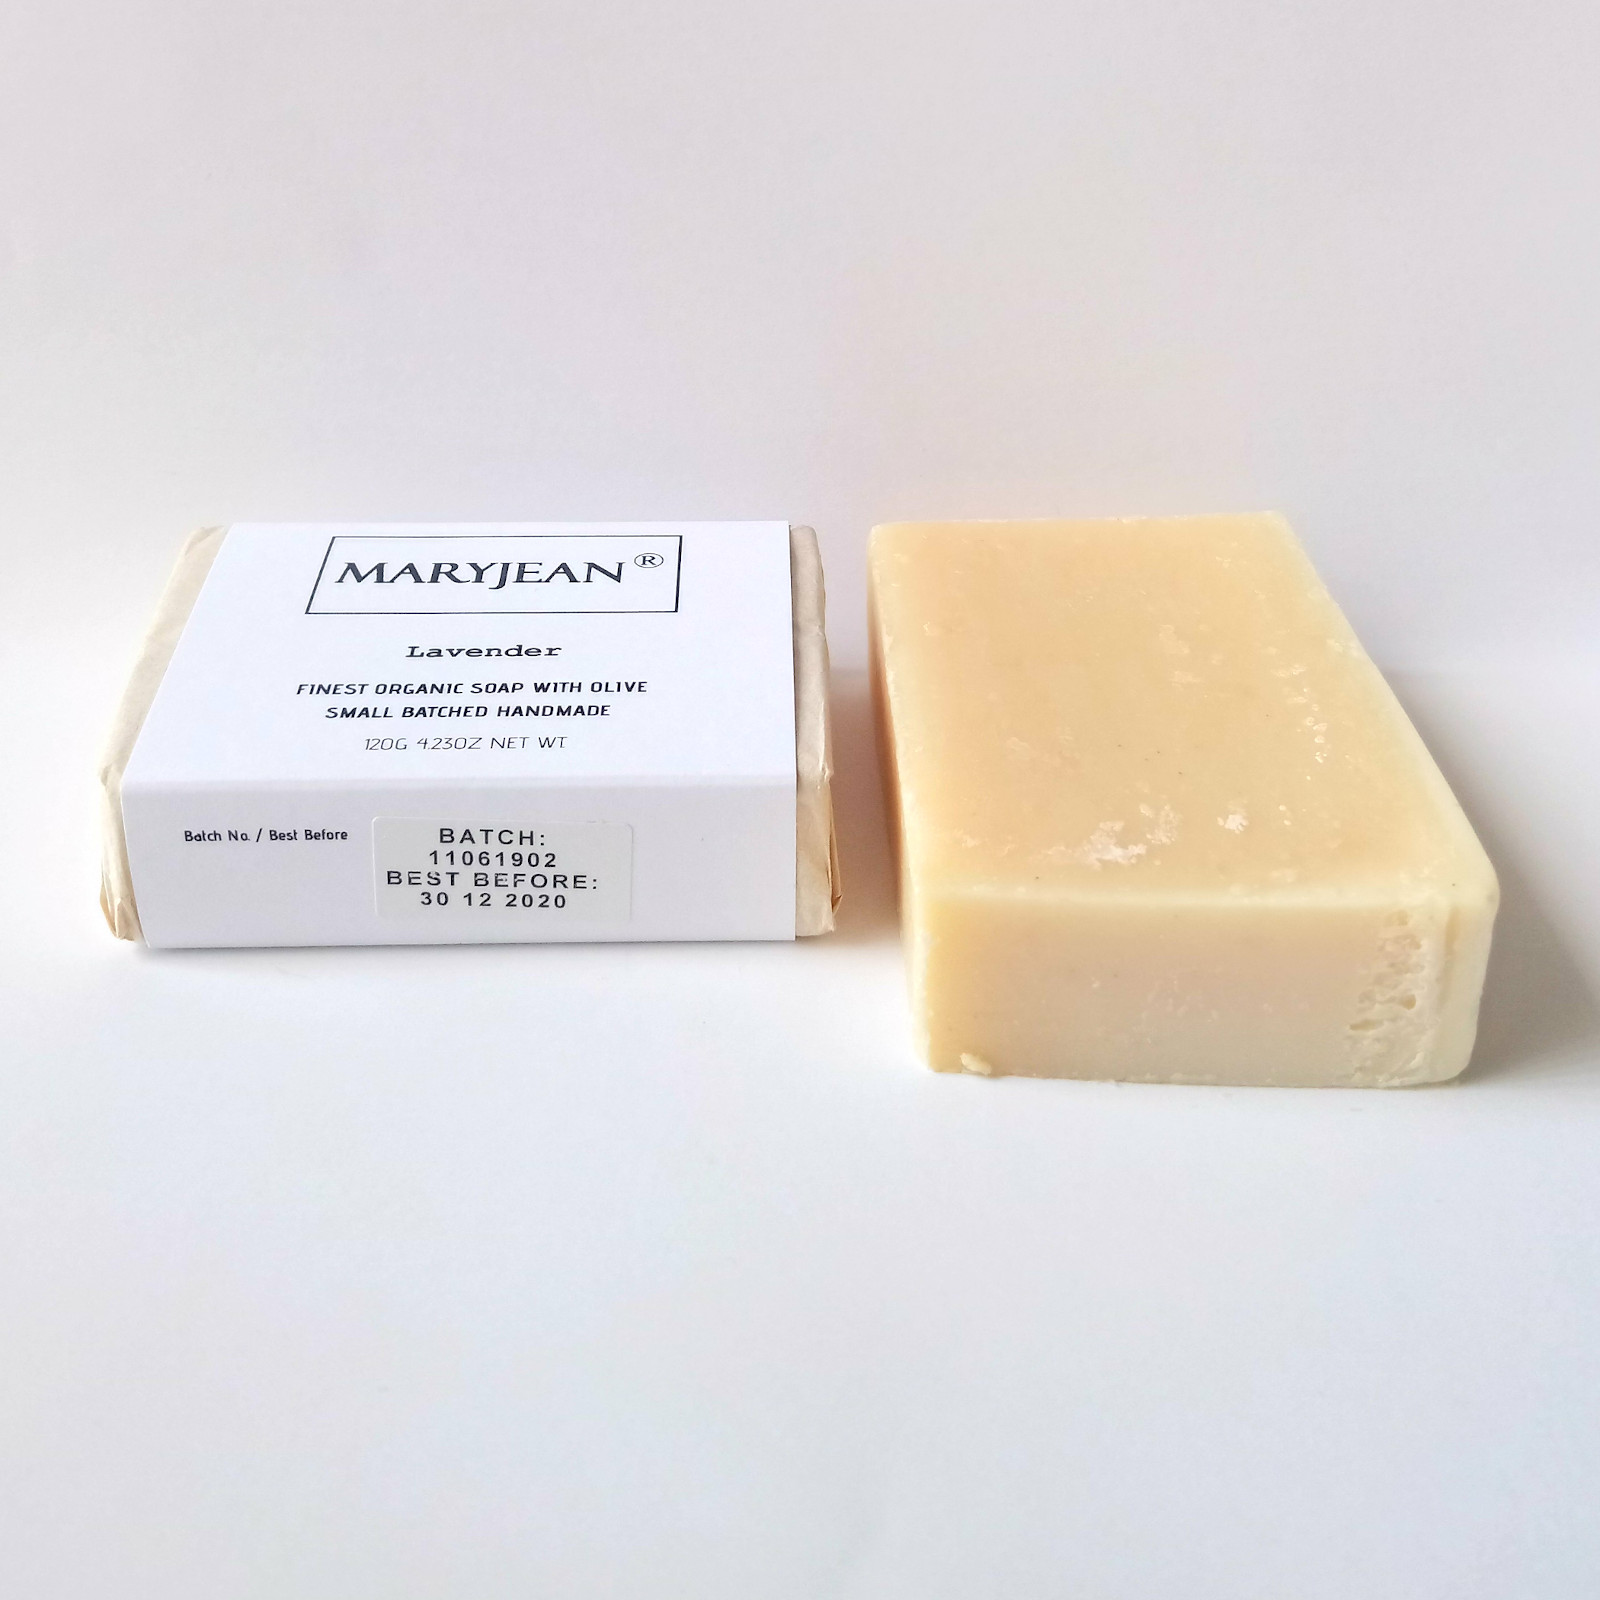 Best all round bar of soap for your family to benefit from deeply moisturising from Coconut and Olive with Cocoa traditional artisan methods to create a luxurious soap bar leaving the skin soft and smelling fresh